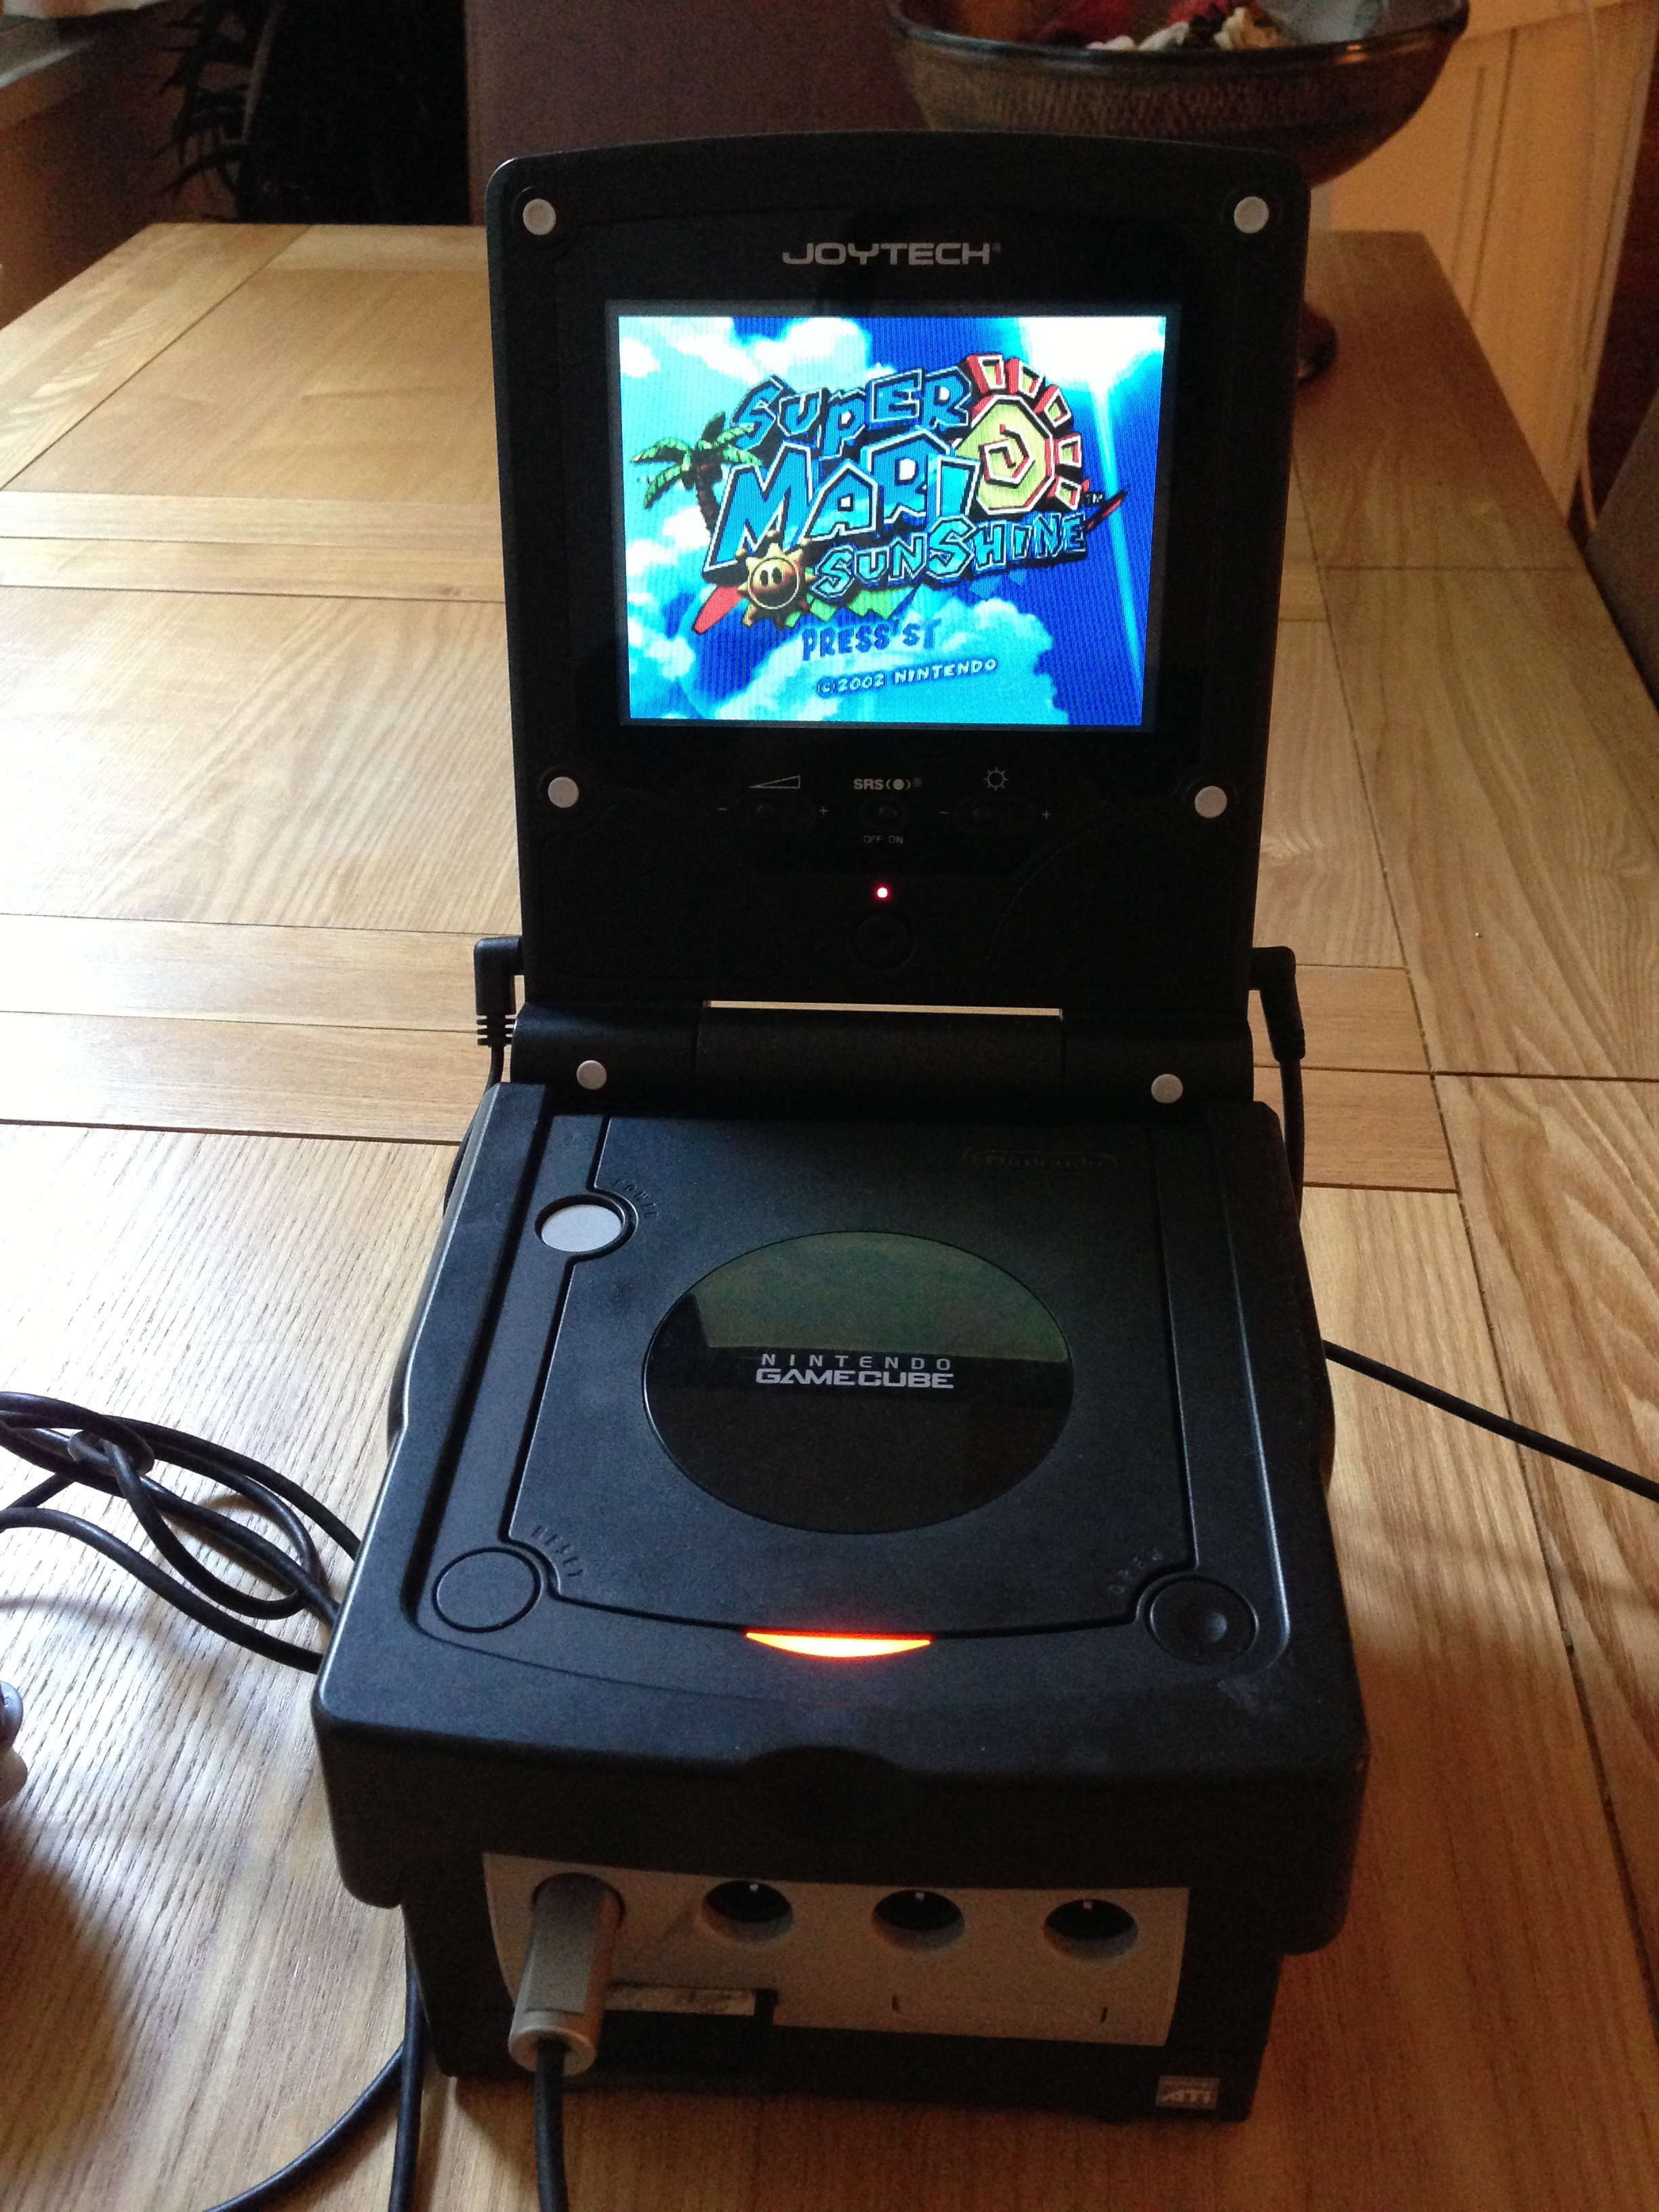 This Week S Purchase Joytech Tft Colour Monitor For Nintendo Gamecube Dracula S Cave